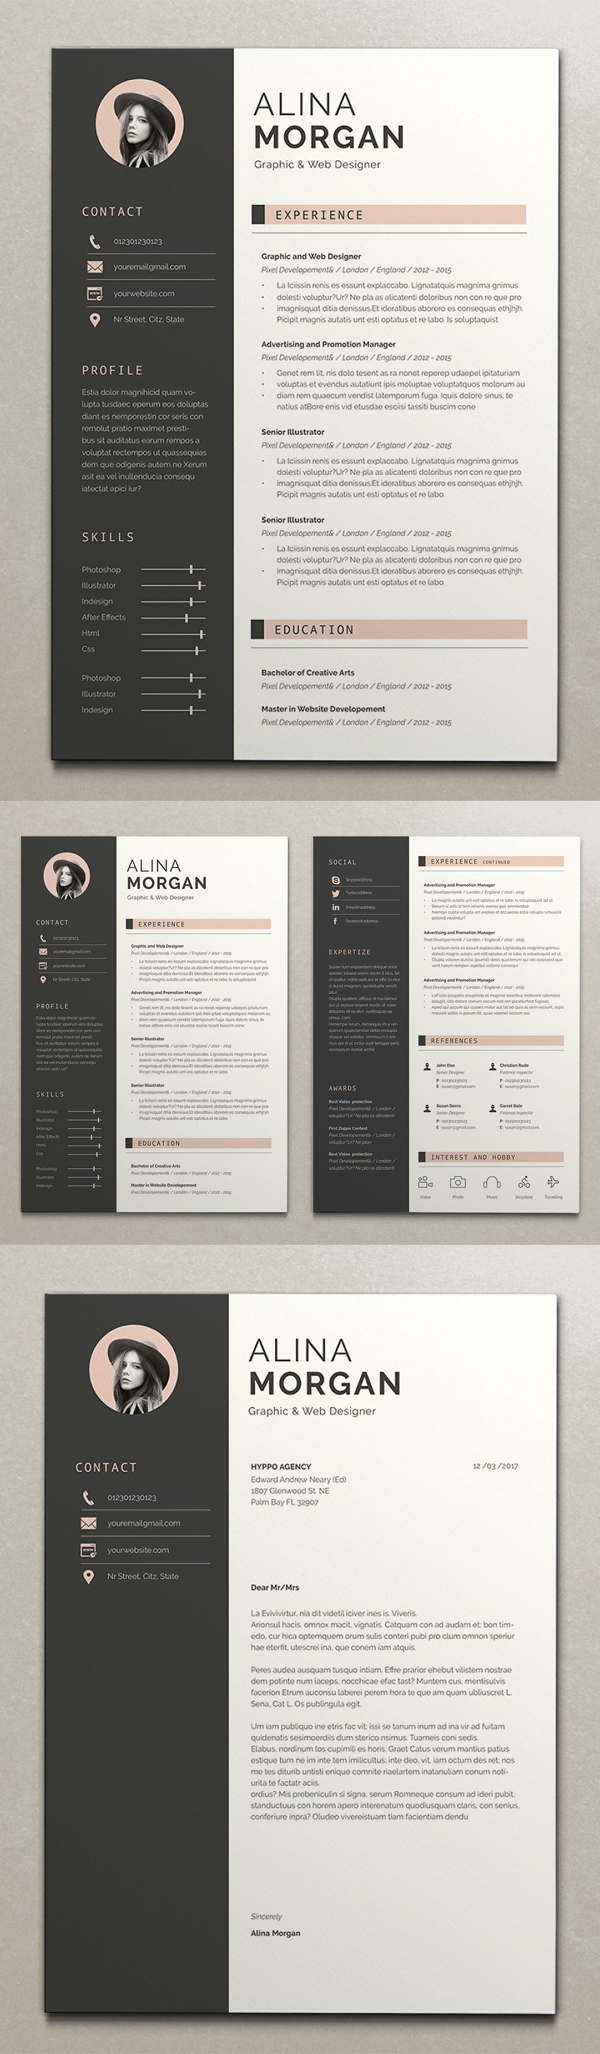 50 Best Resume Templates Of 2020 - 6